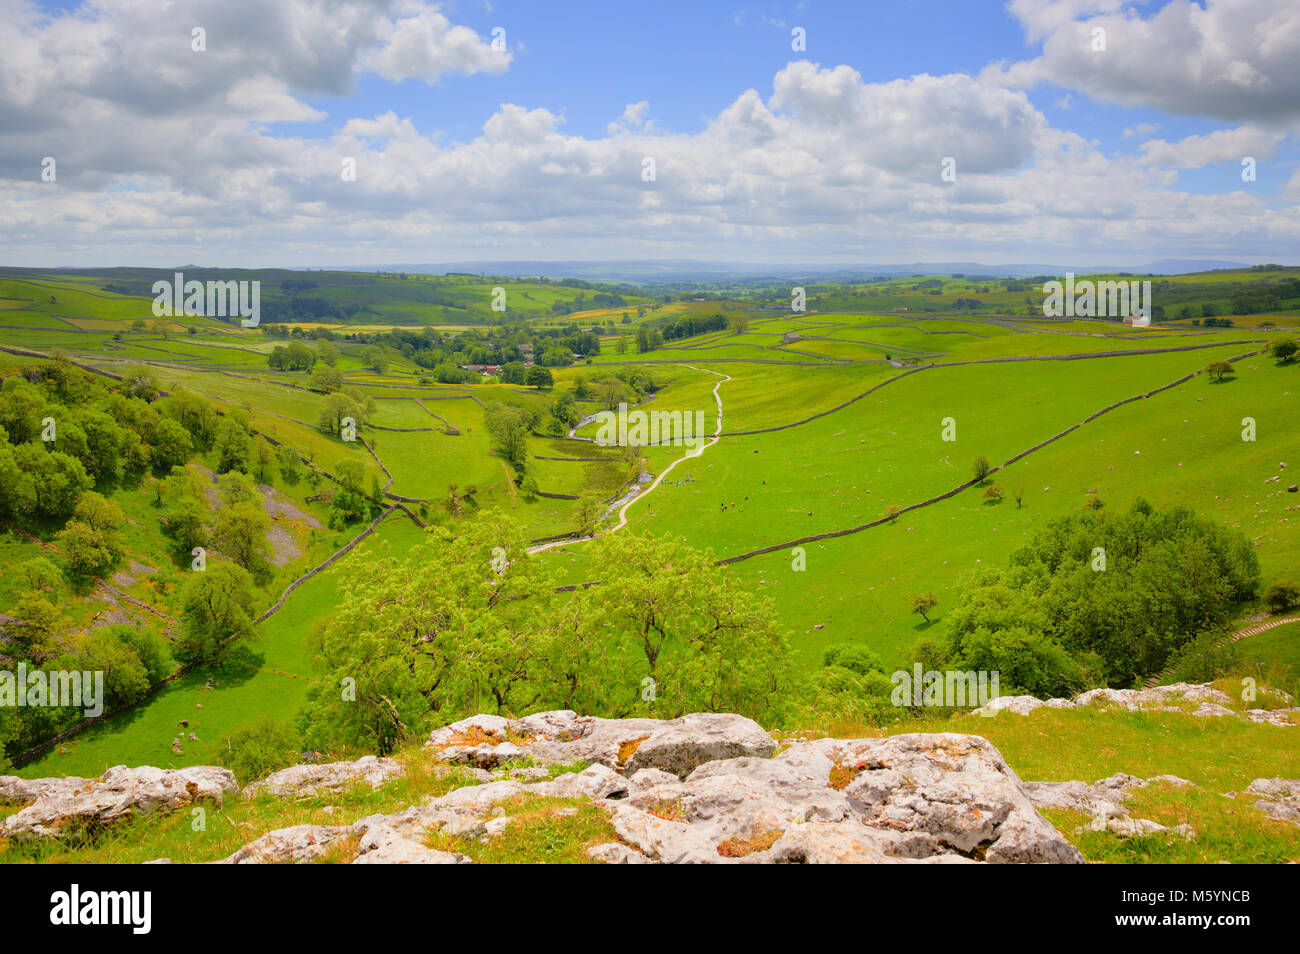 Yorkshire dales from Malham Cove England UK popular tourist destination - Stock Image